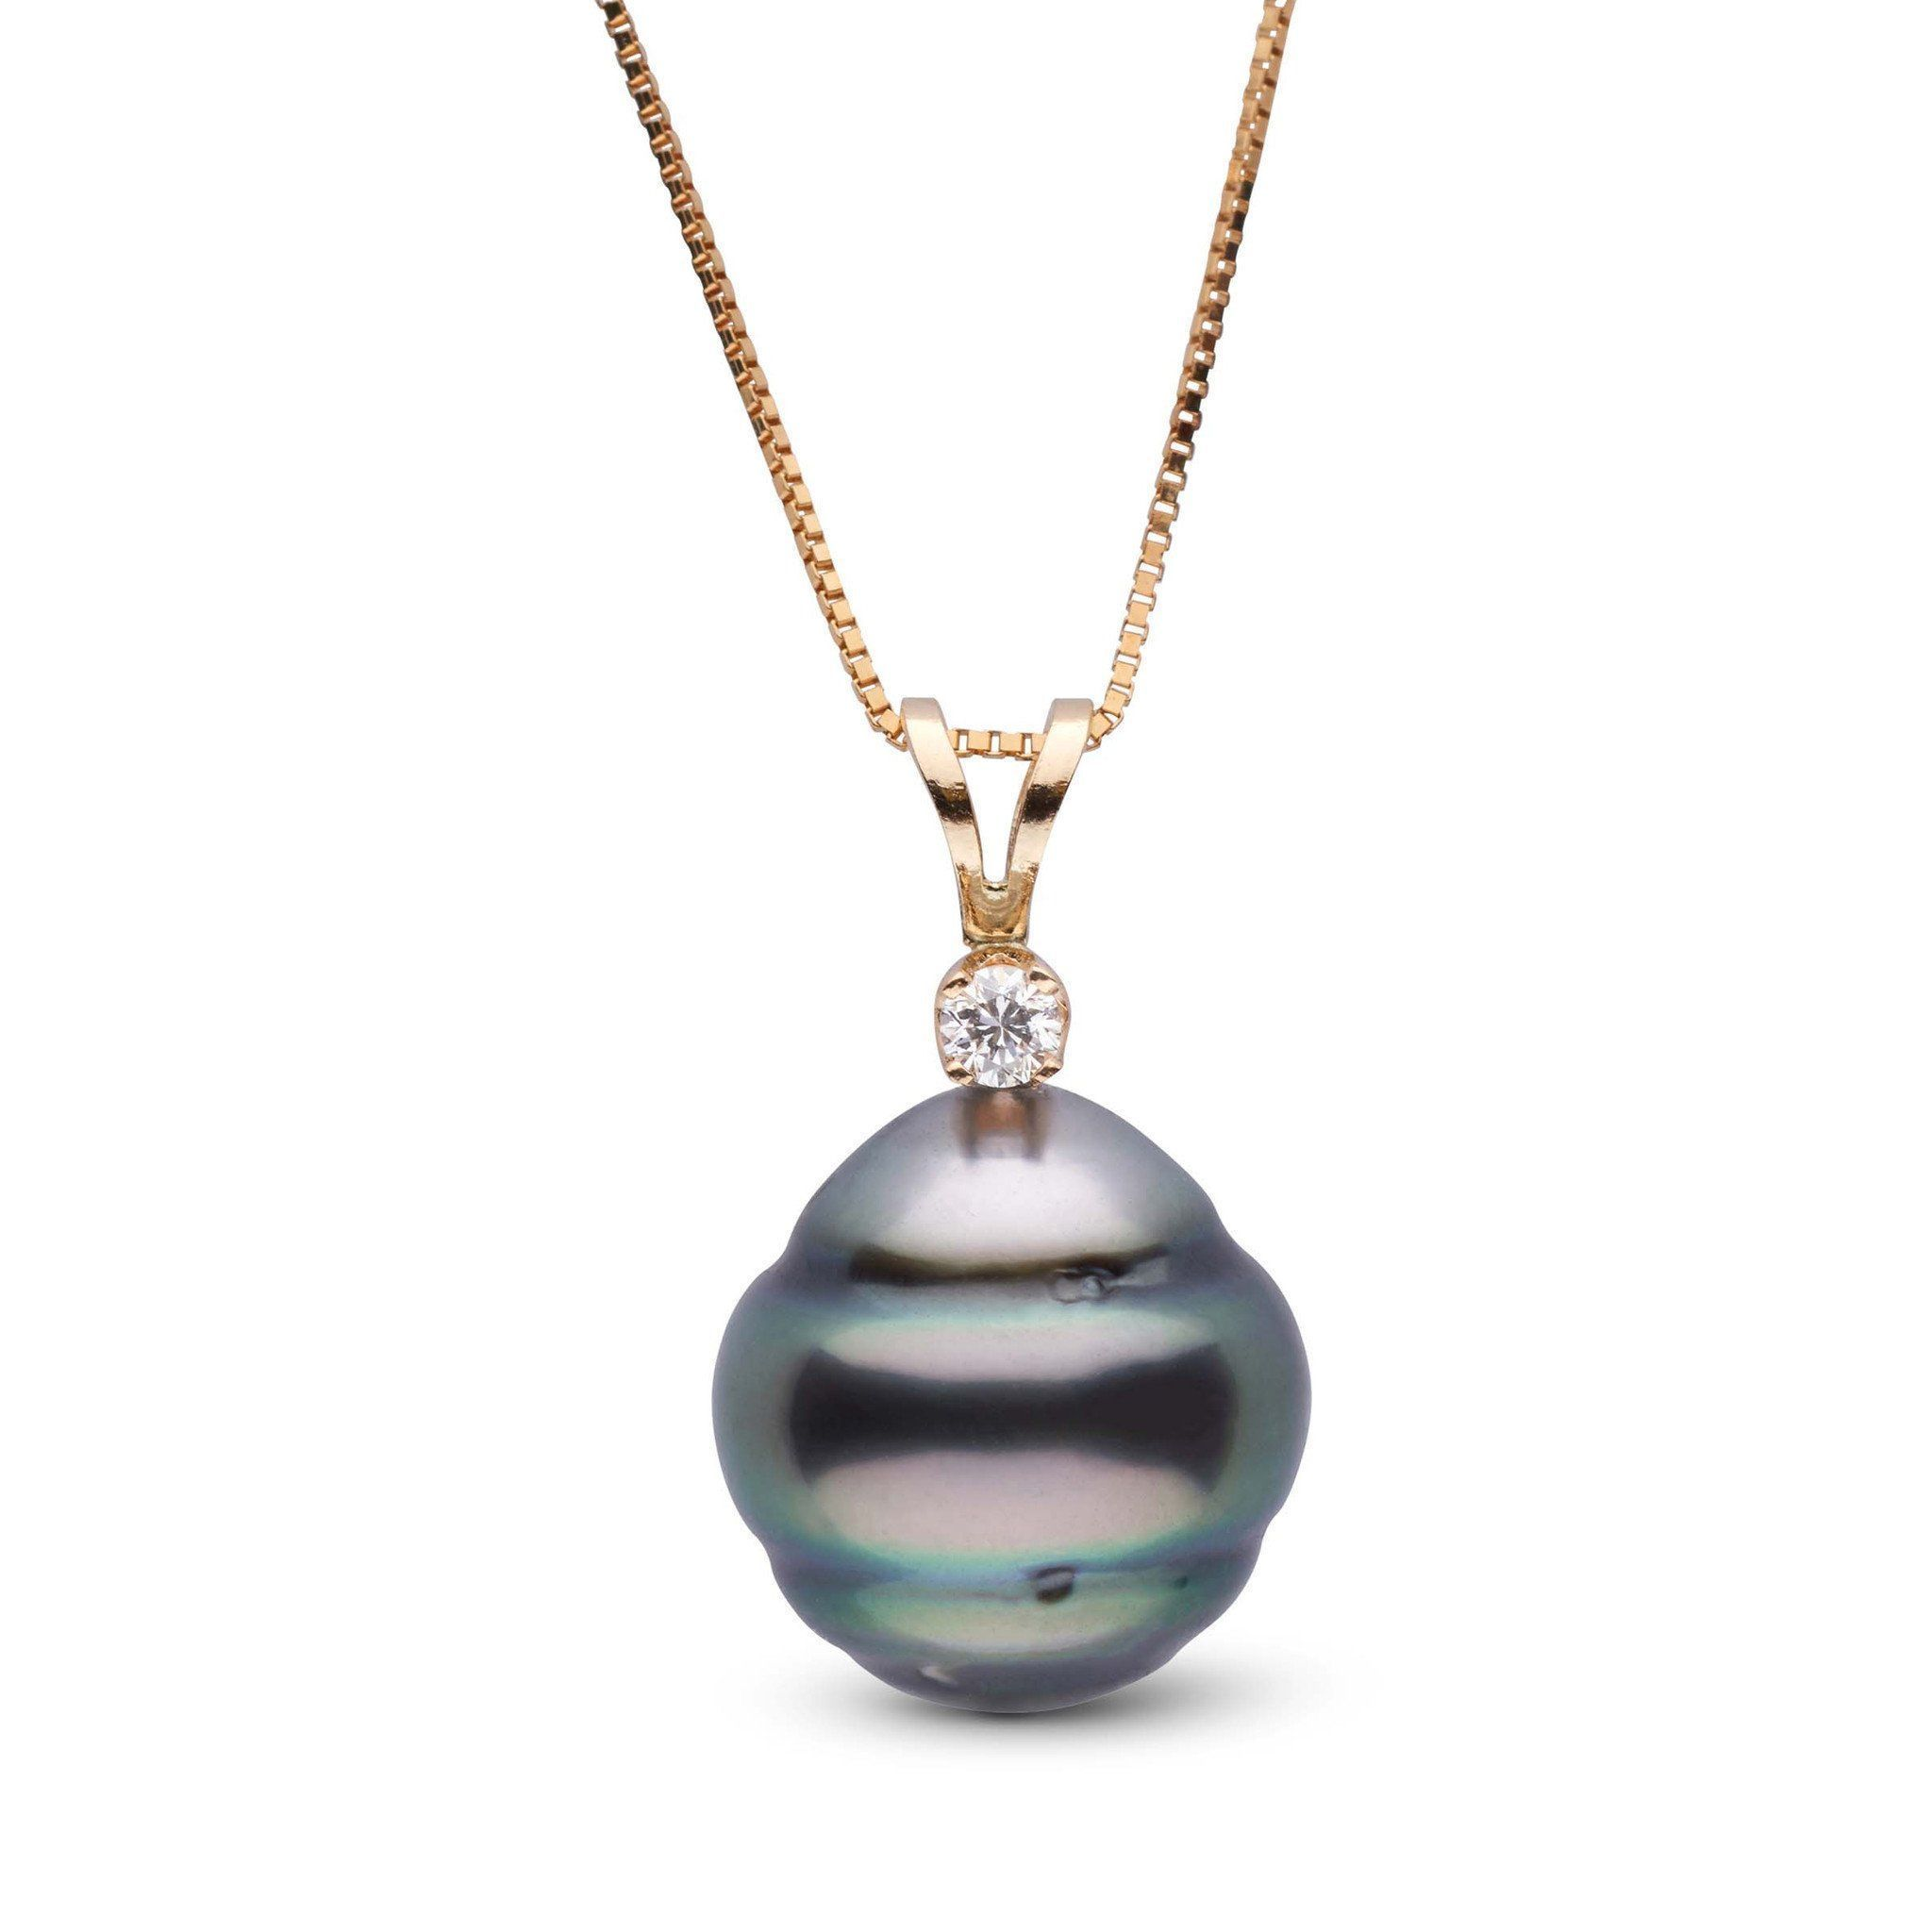 Harmony Collection 10.0-11.0 mm Tahitian Baroque Pearl & Diamond Pendant